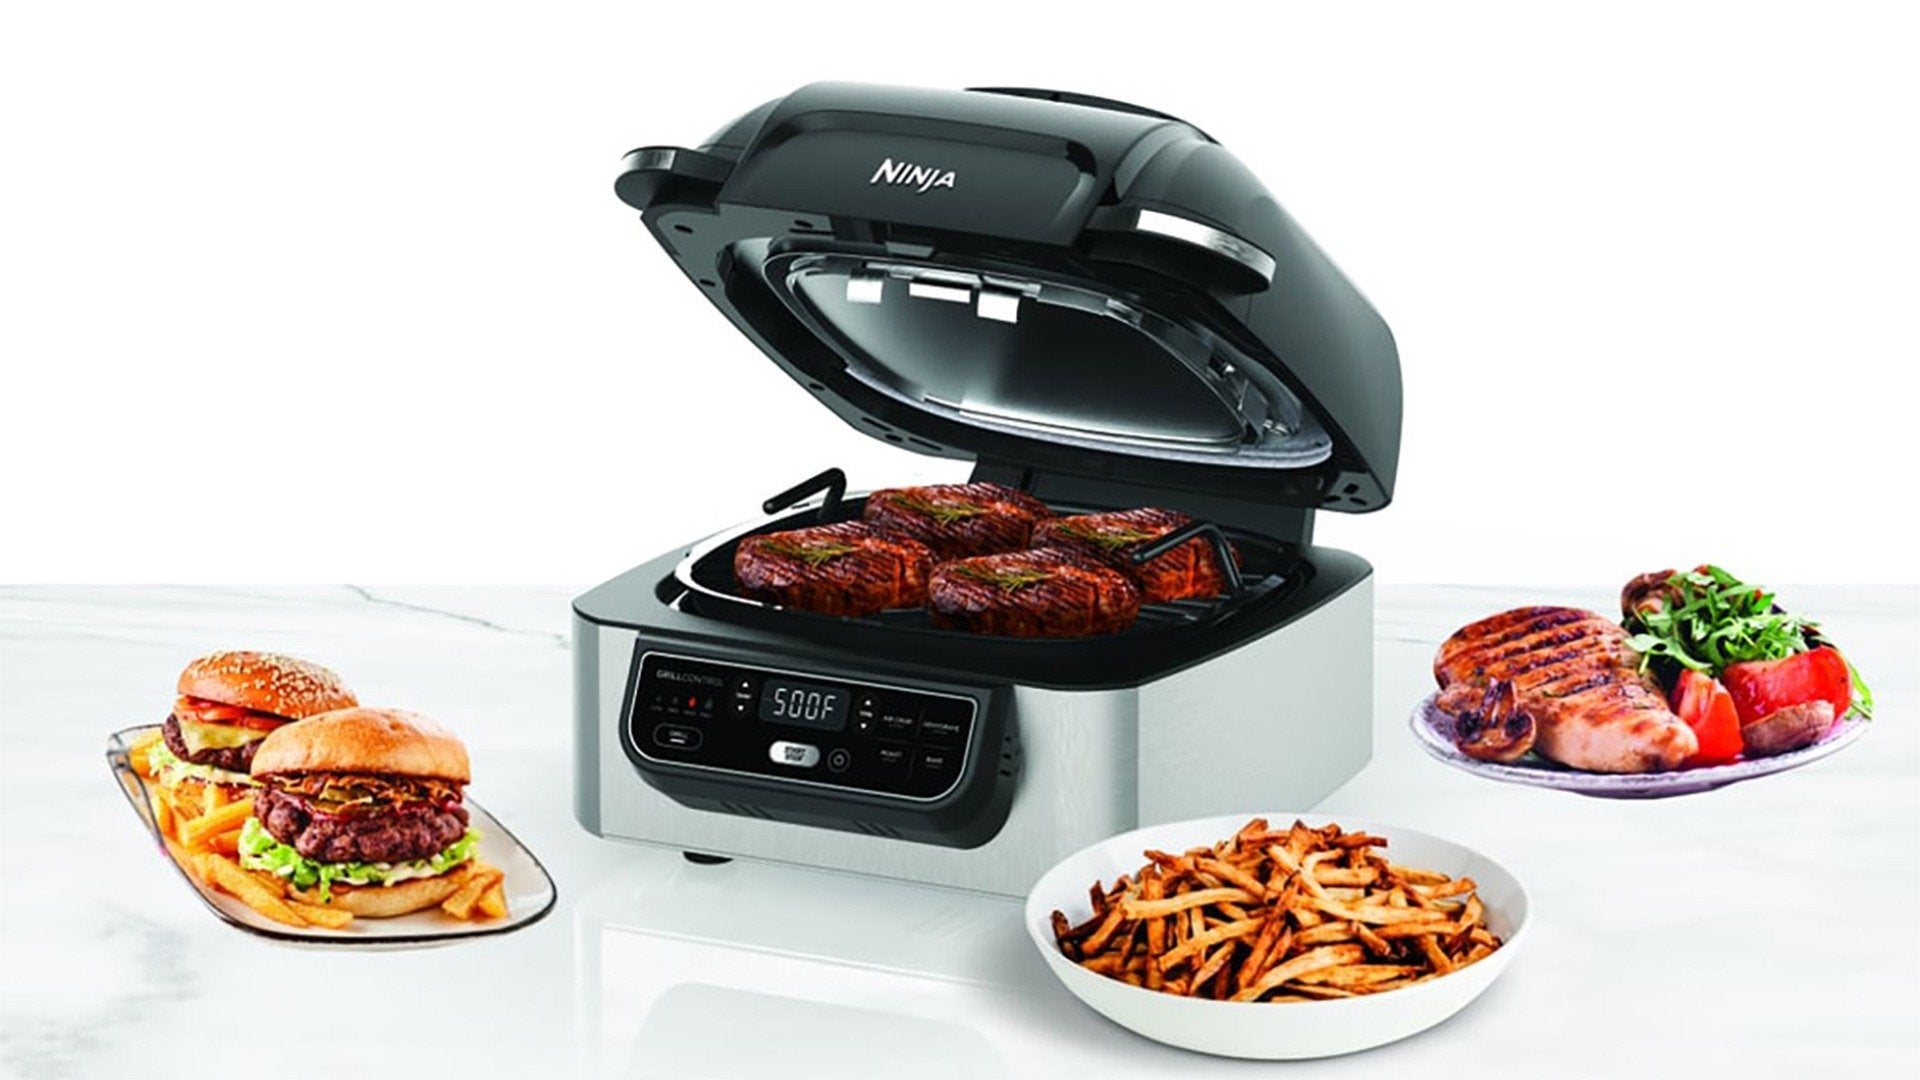 Ninja Foodi Grill - The grill that sears, sizzles, and air fry crisps!